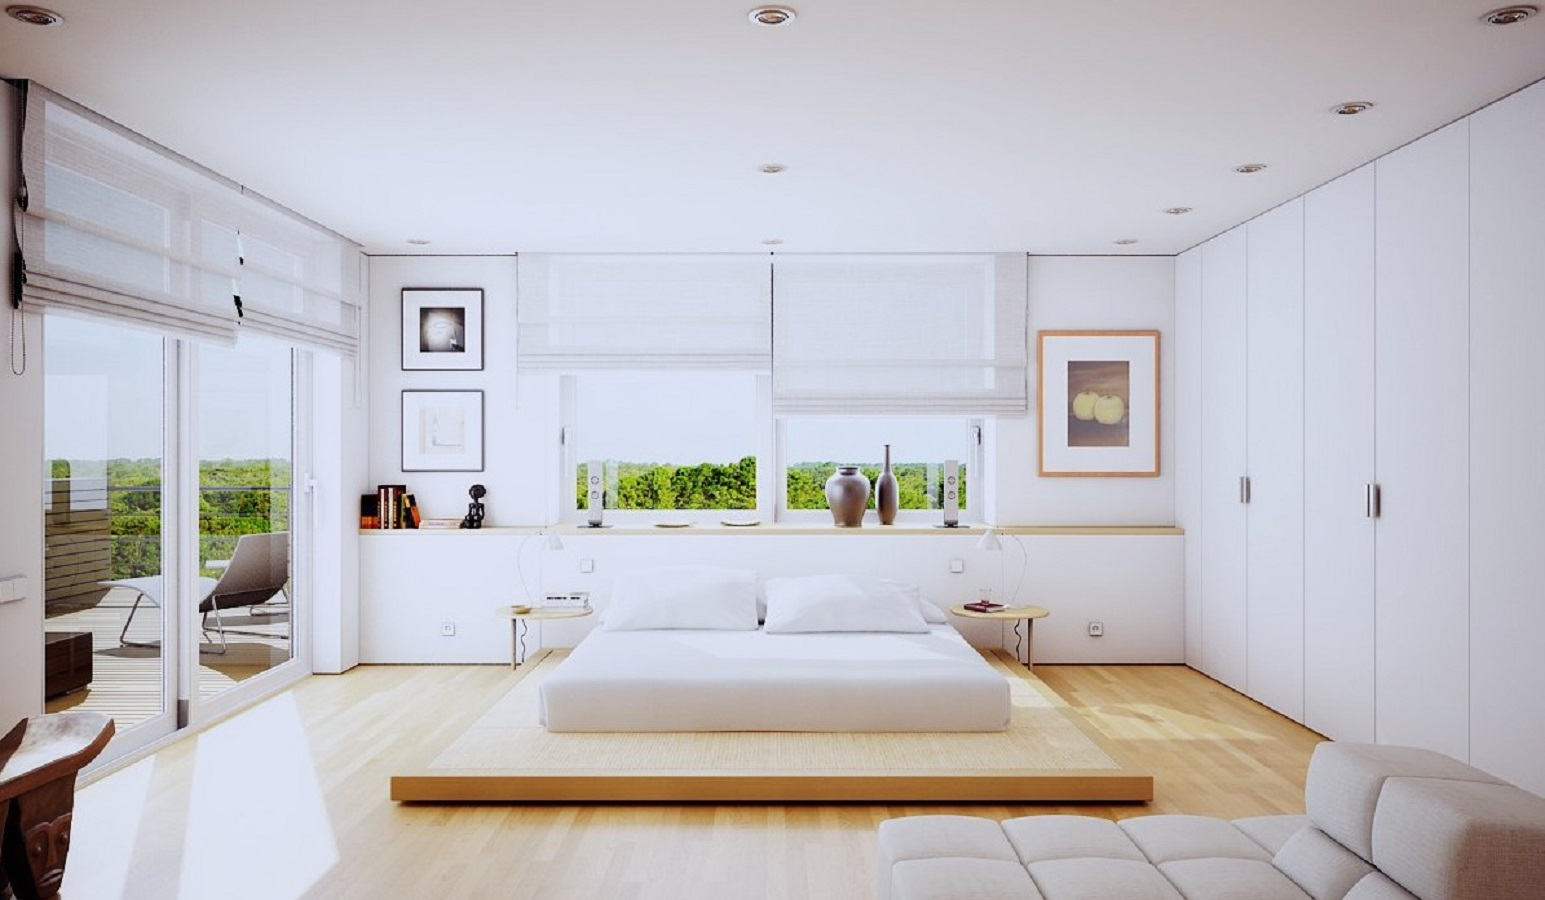 Complete minimalist Charismatic Minimalist Bedroom Ideas That Low On Clutter But Big On Style